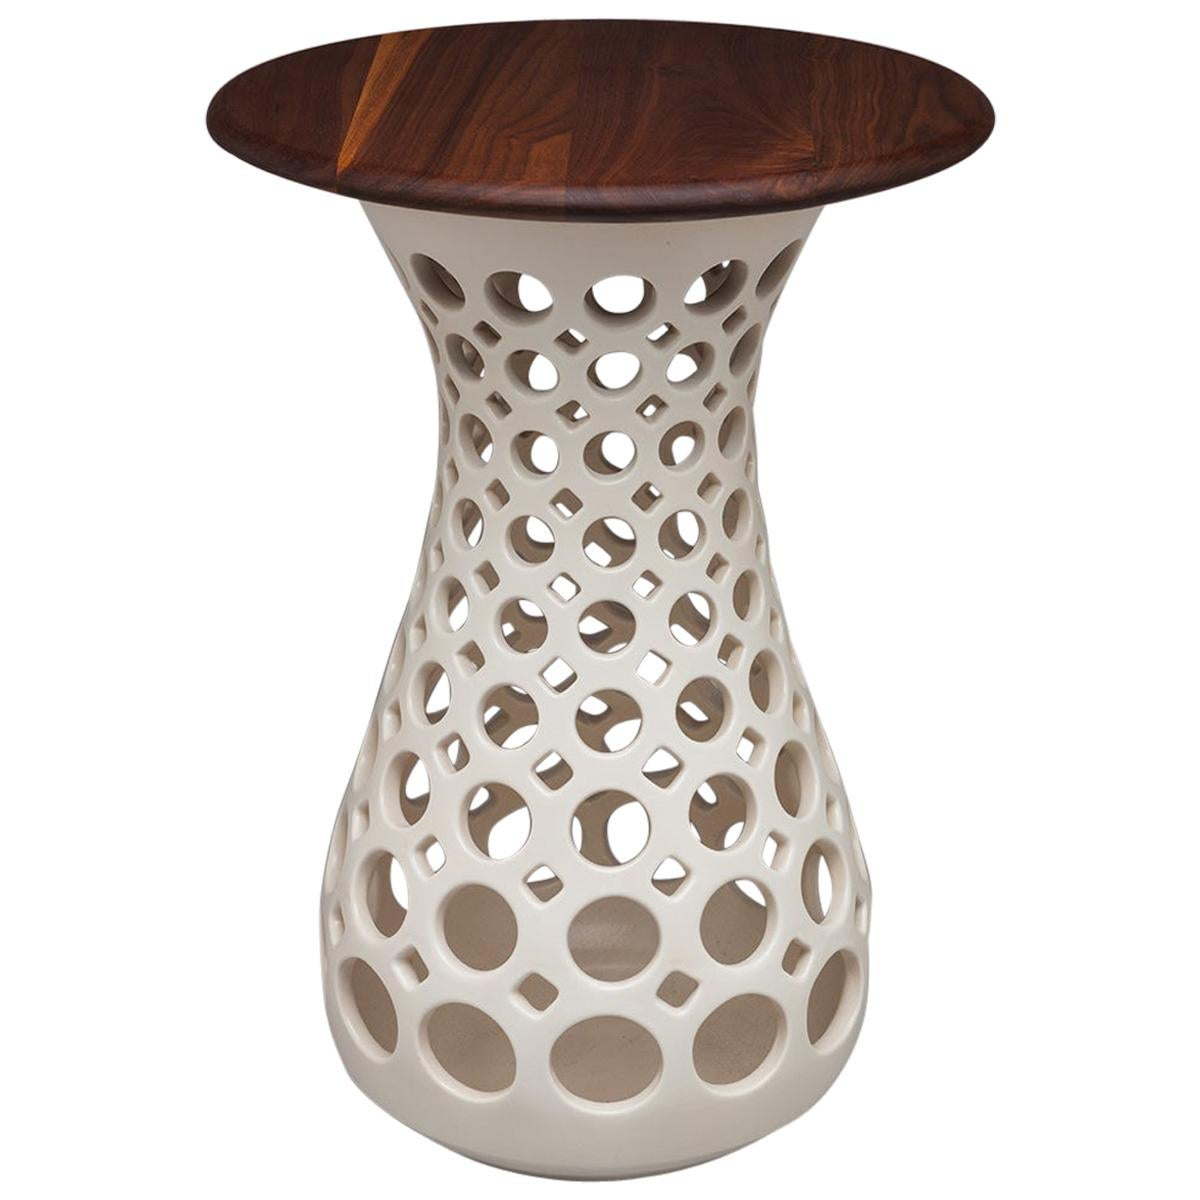 Pierced White ceramic Side Table with Walnut Top, In Stock